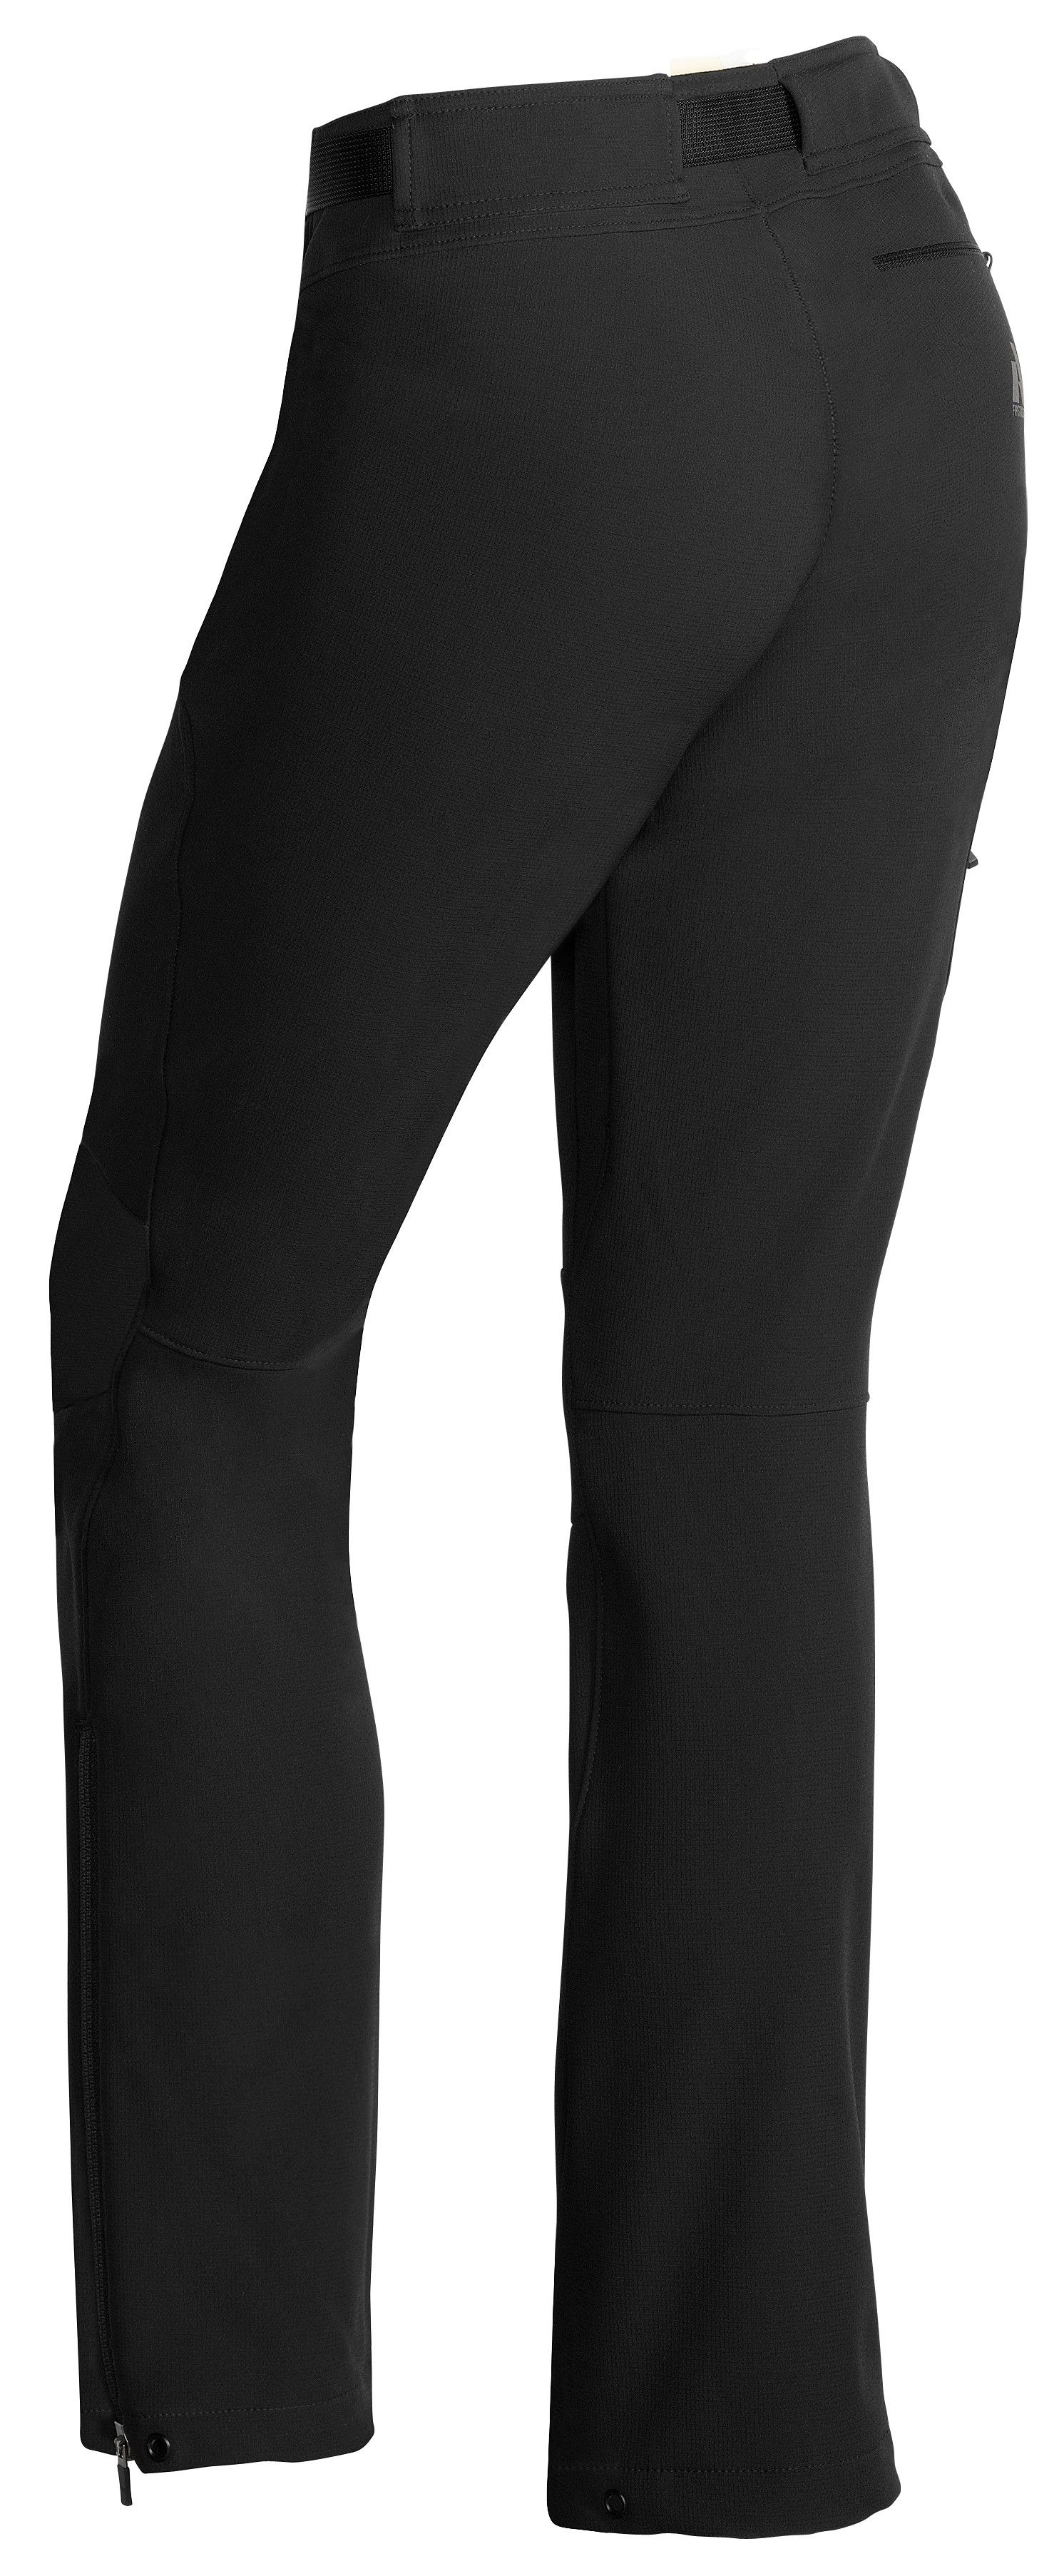 First Ascent Mountain Guide Pants Pants, Clothes, Eddie